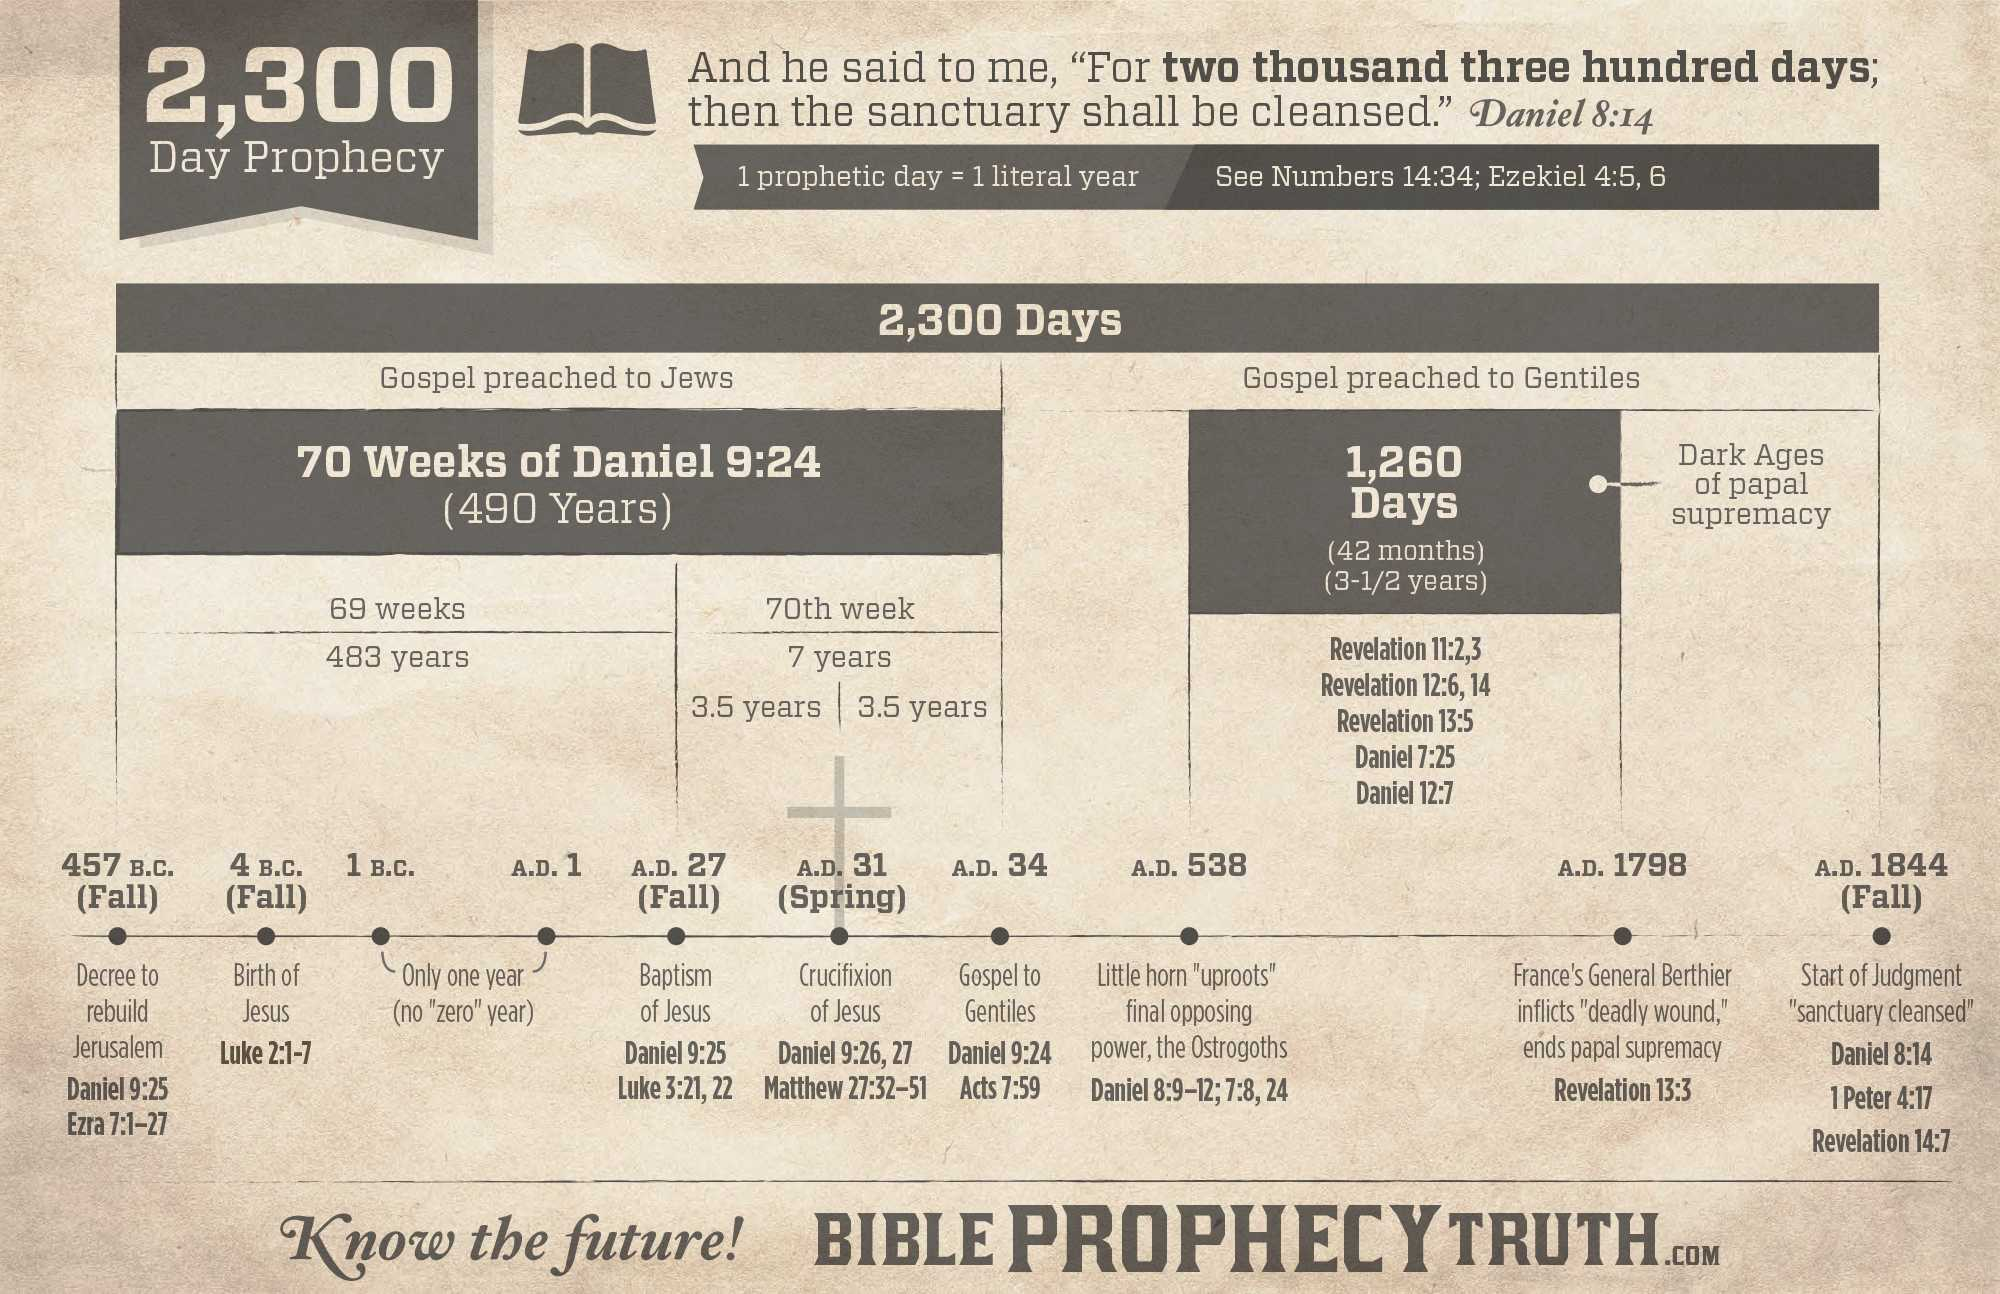 the 2300 day prophecy chart